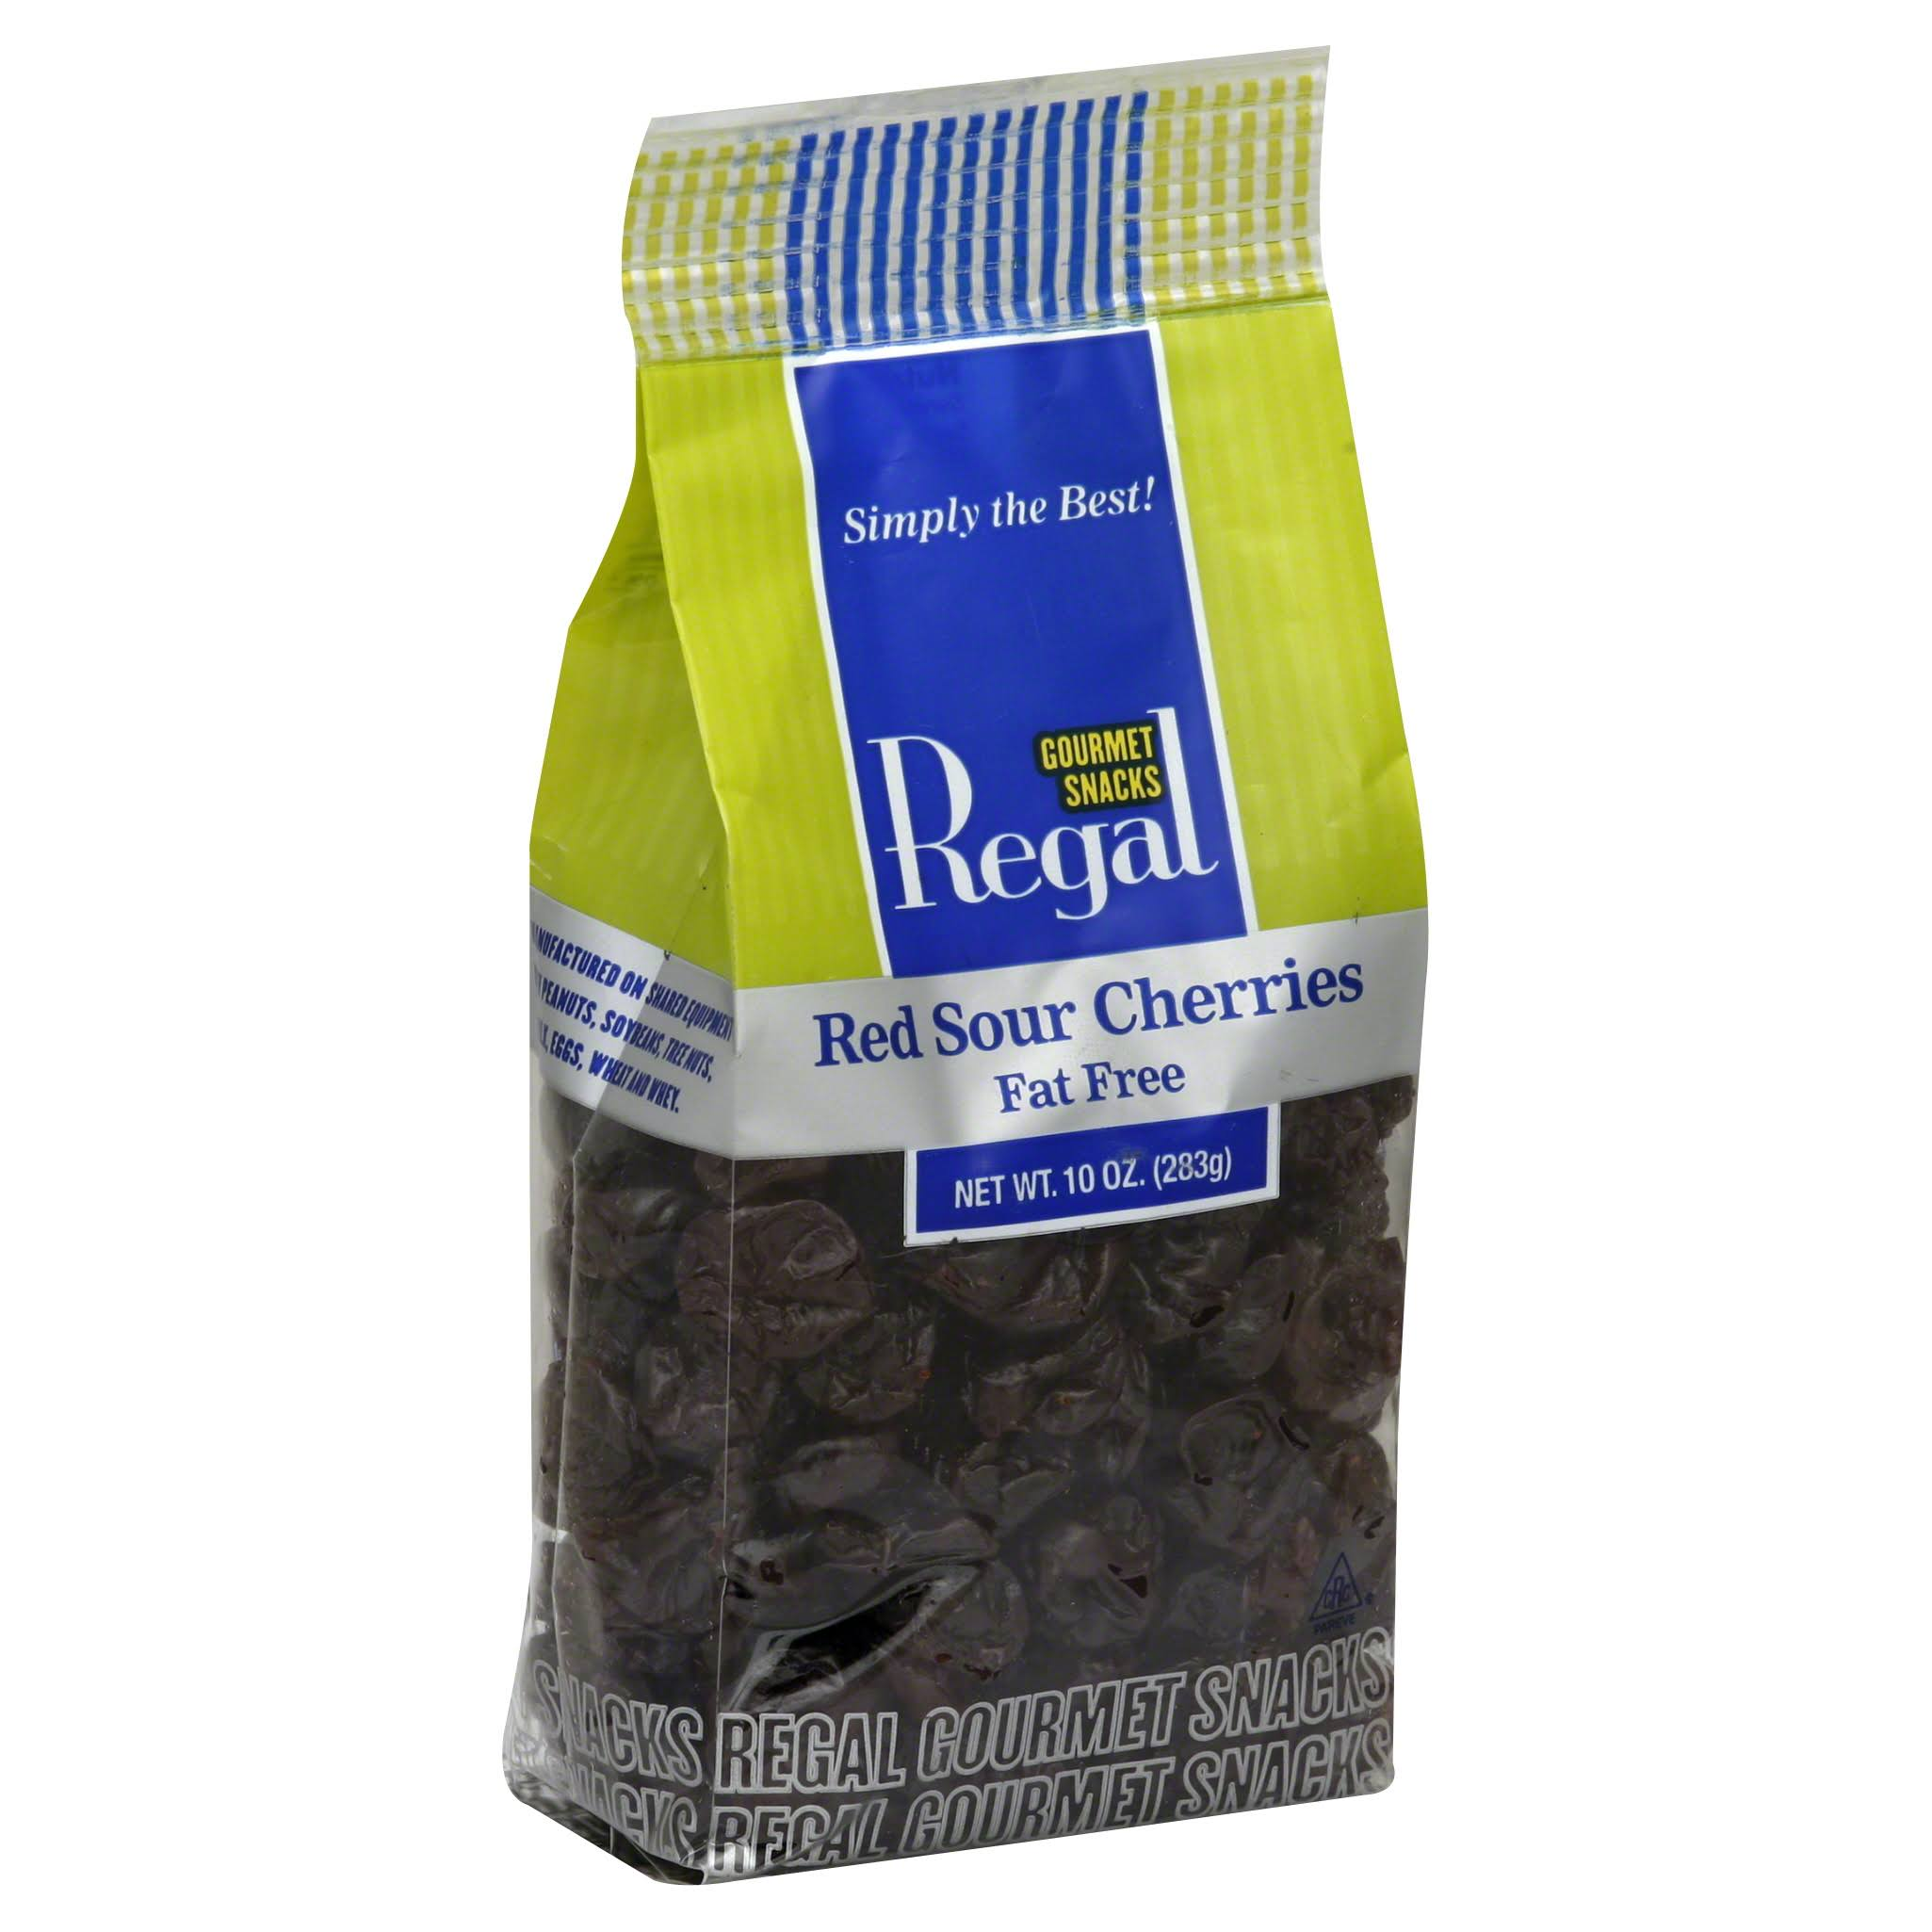 Regal Cherries, Red, Sour, Fat Free - 10 oz